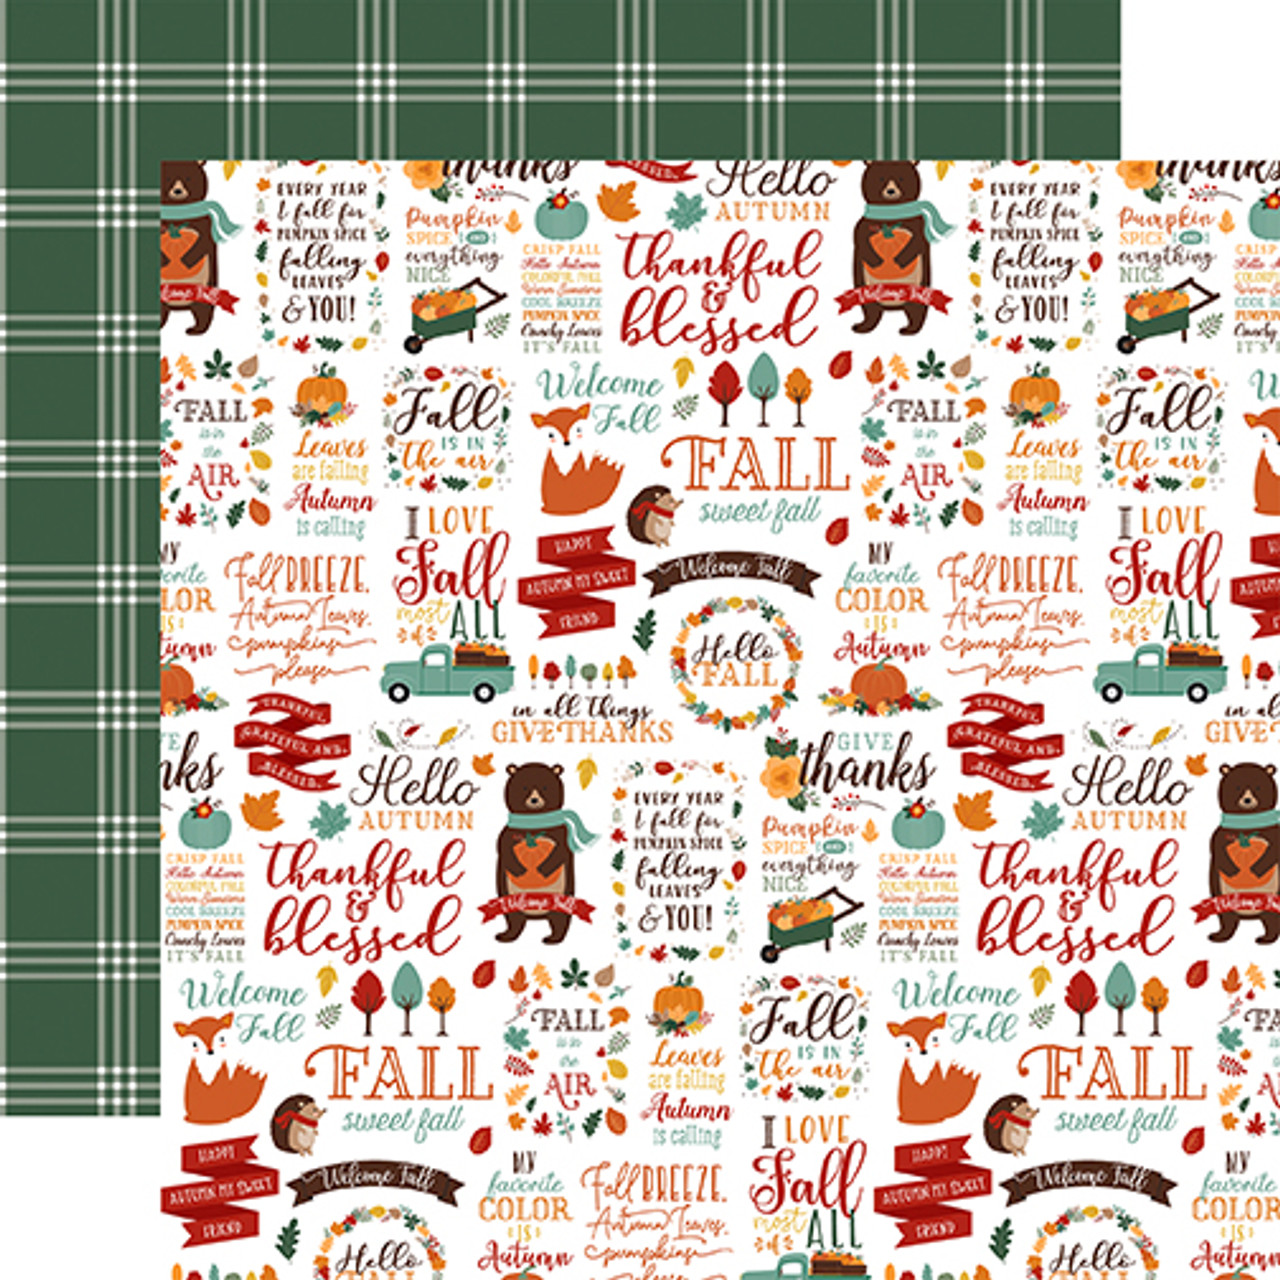 Happy Fall Collection Hello Autumn 12 x 12 Double-Sided Scrapbook Paper by Echo Park Paper